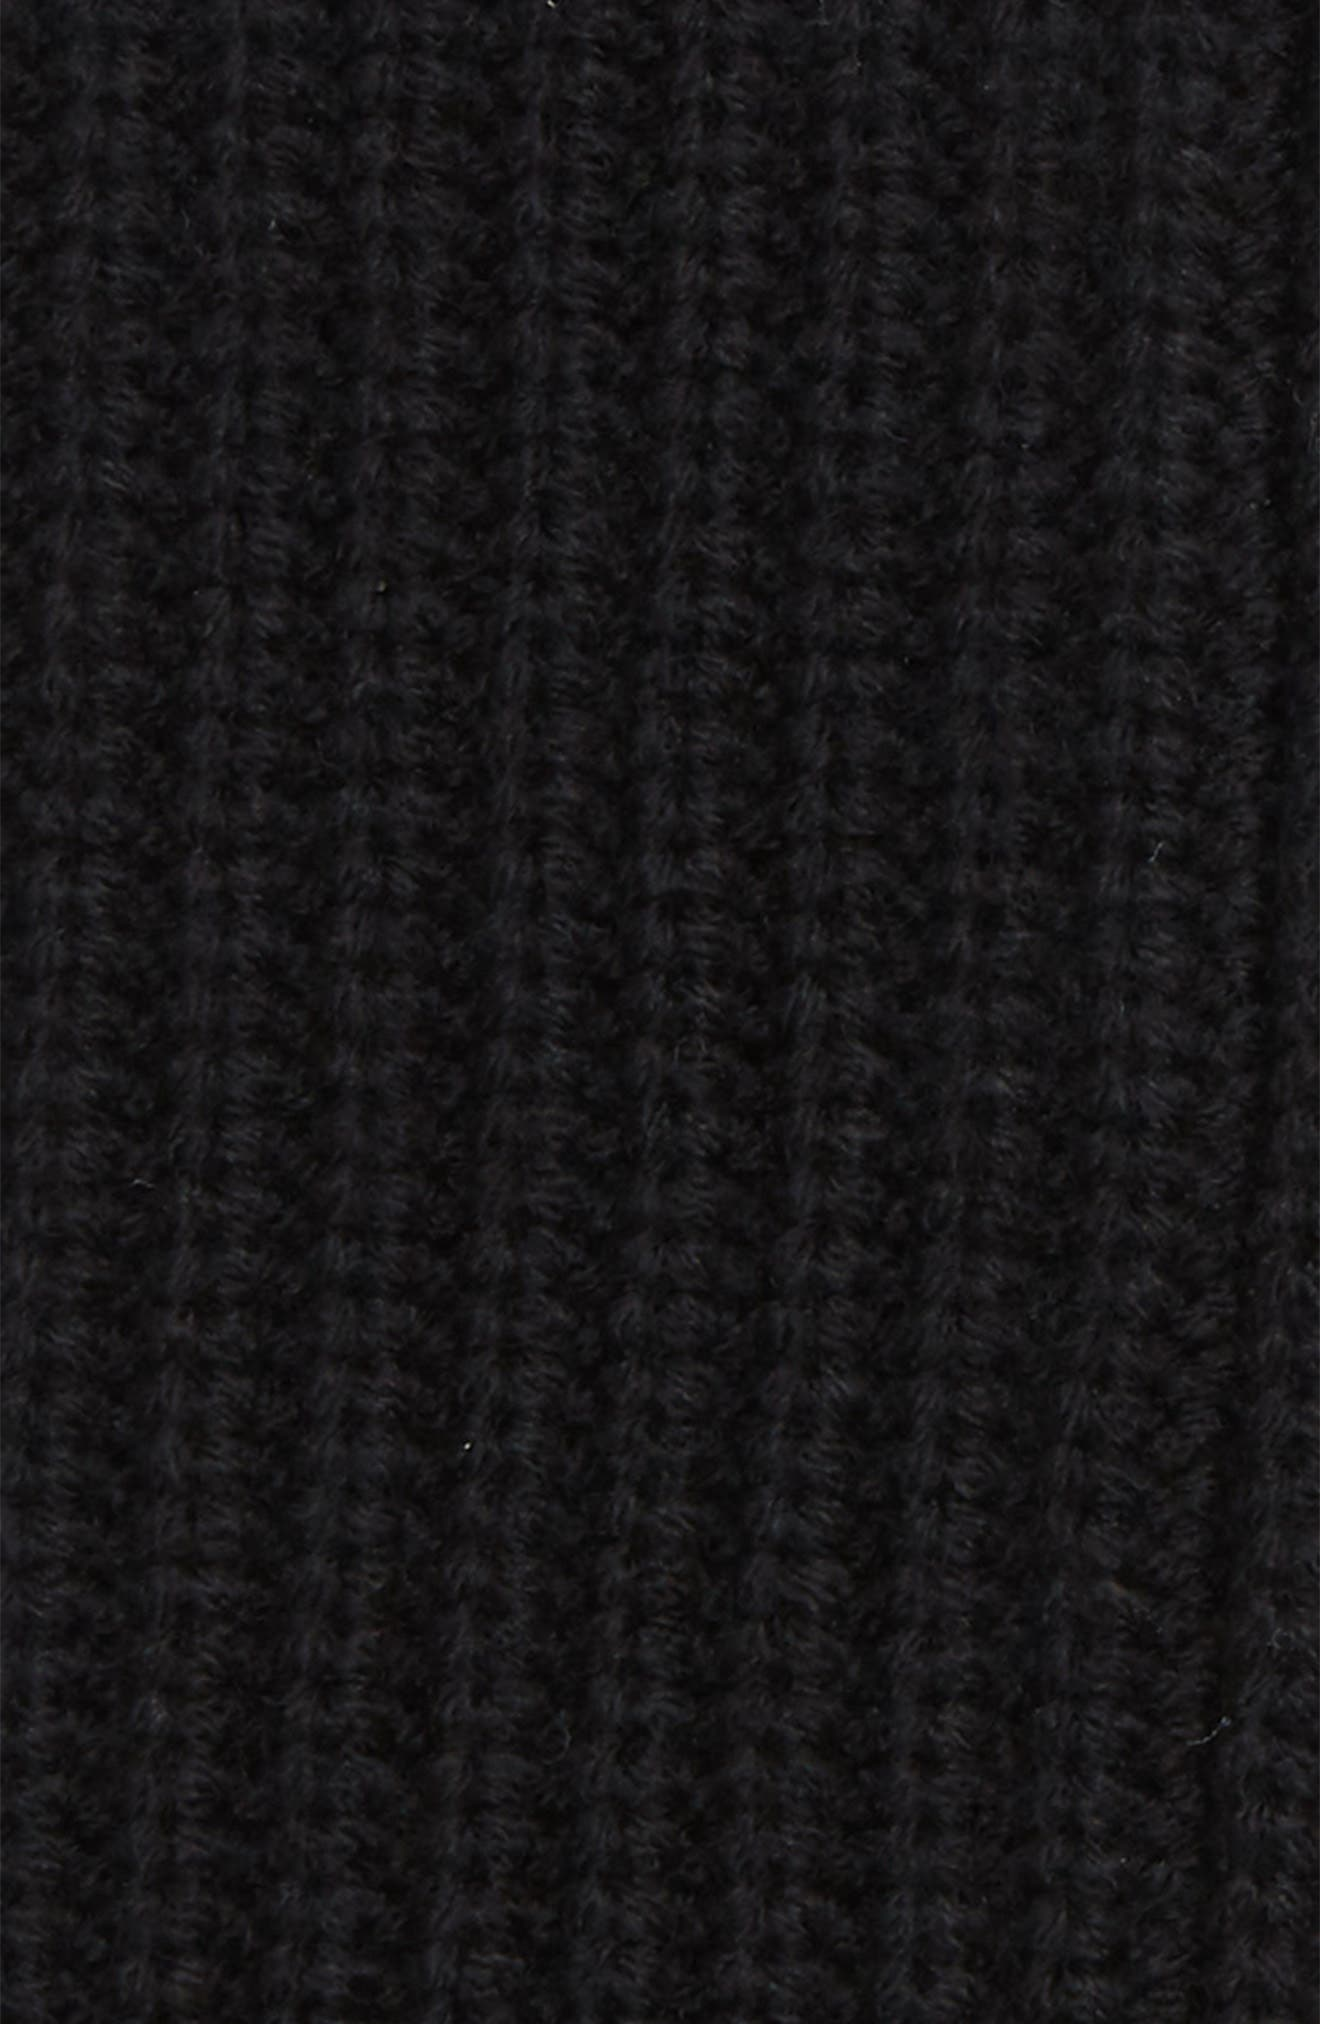 Half-Cardigan Stitch Arm Warmers,                             Alternate thumbnail 2, color,                             BLACK